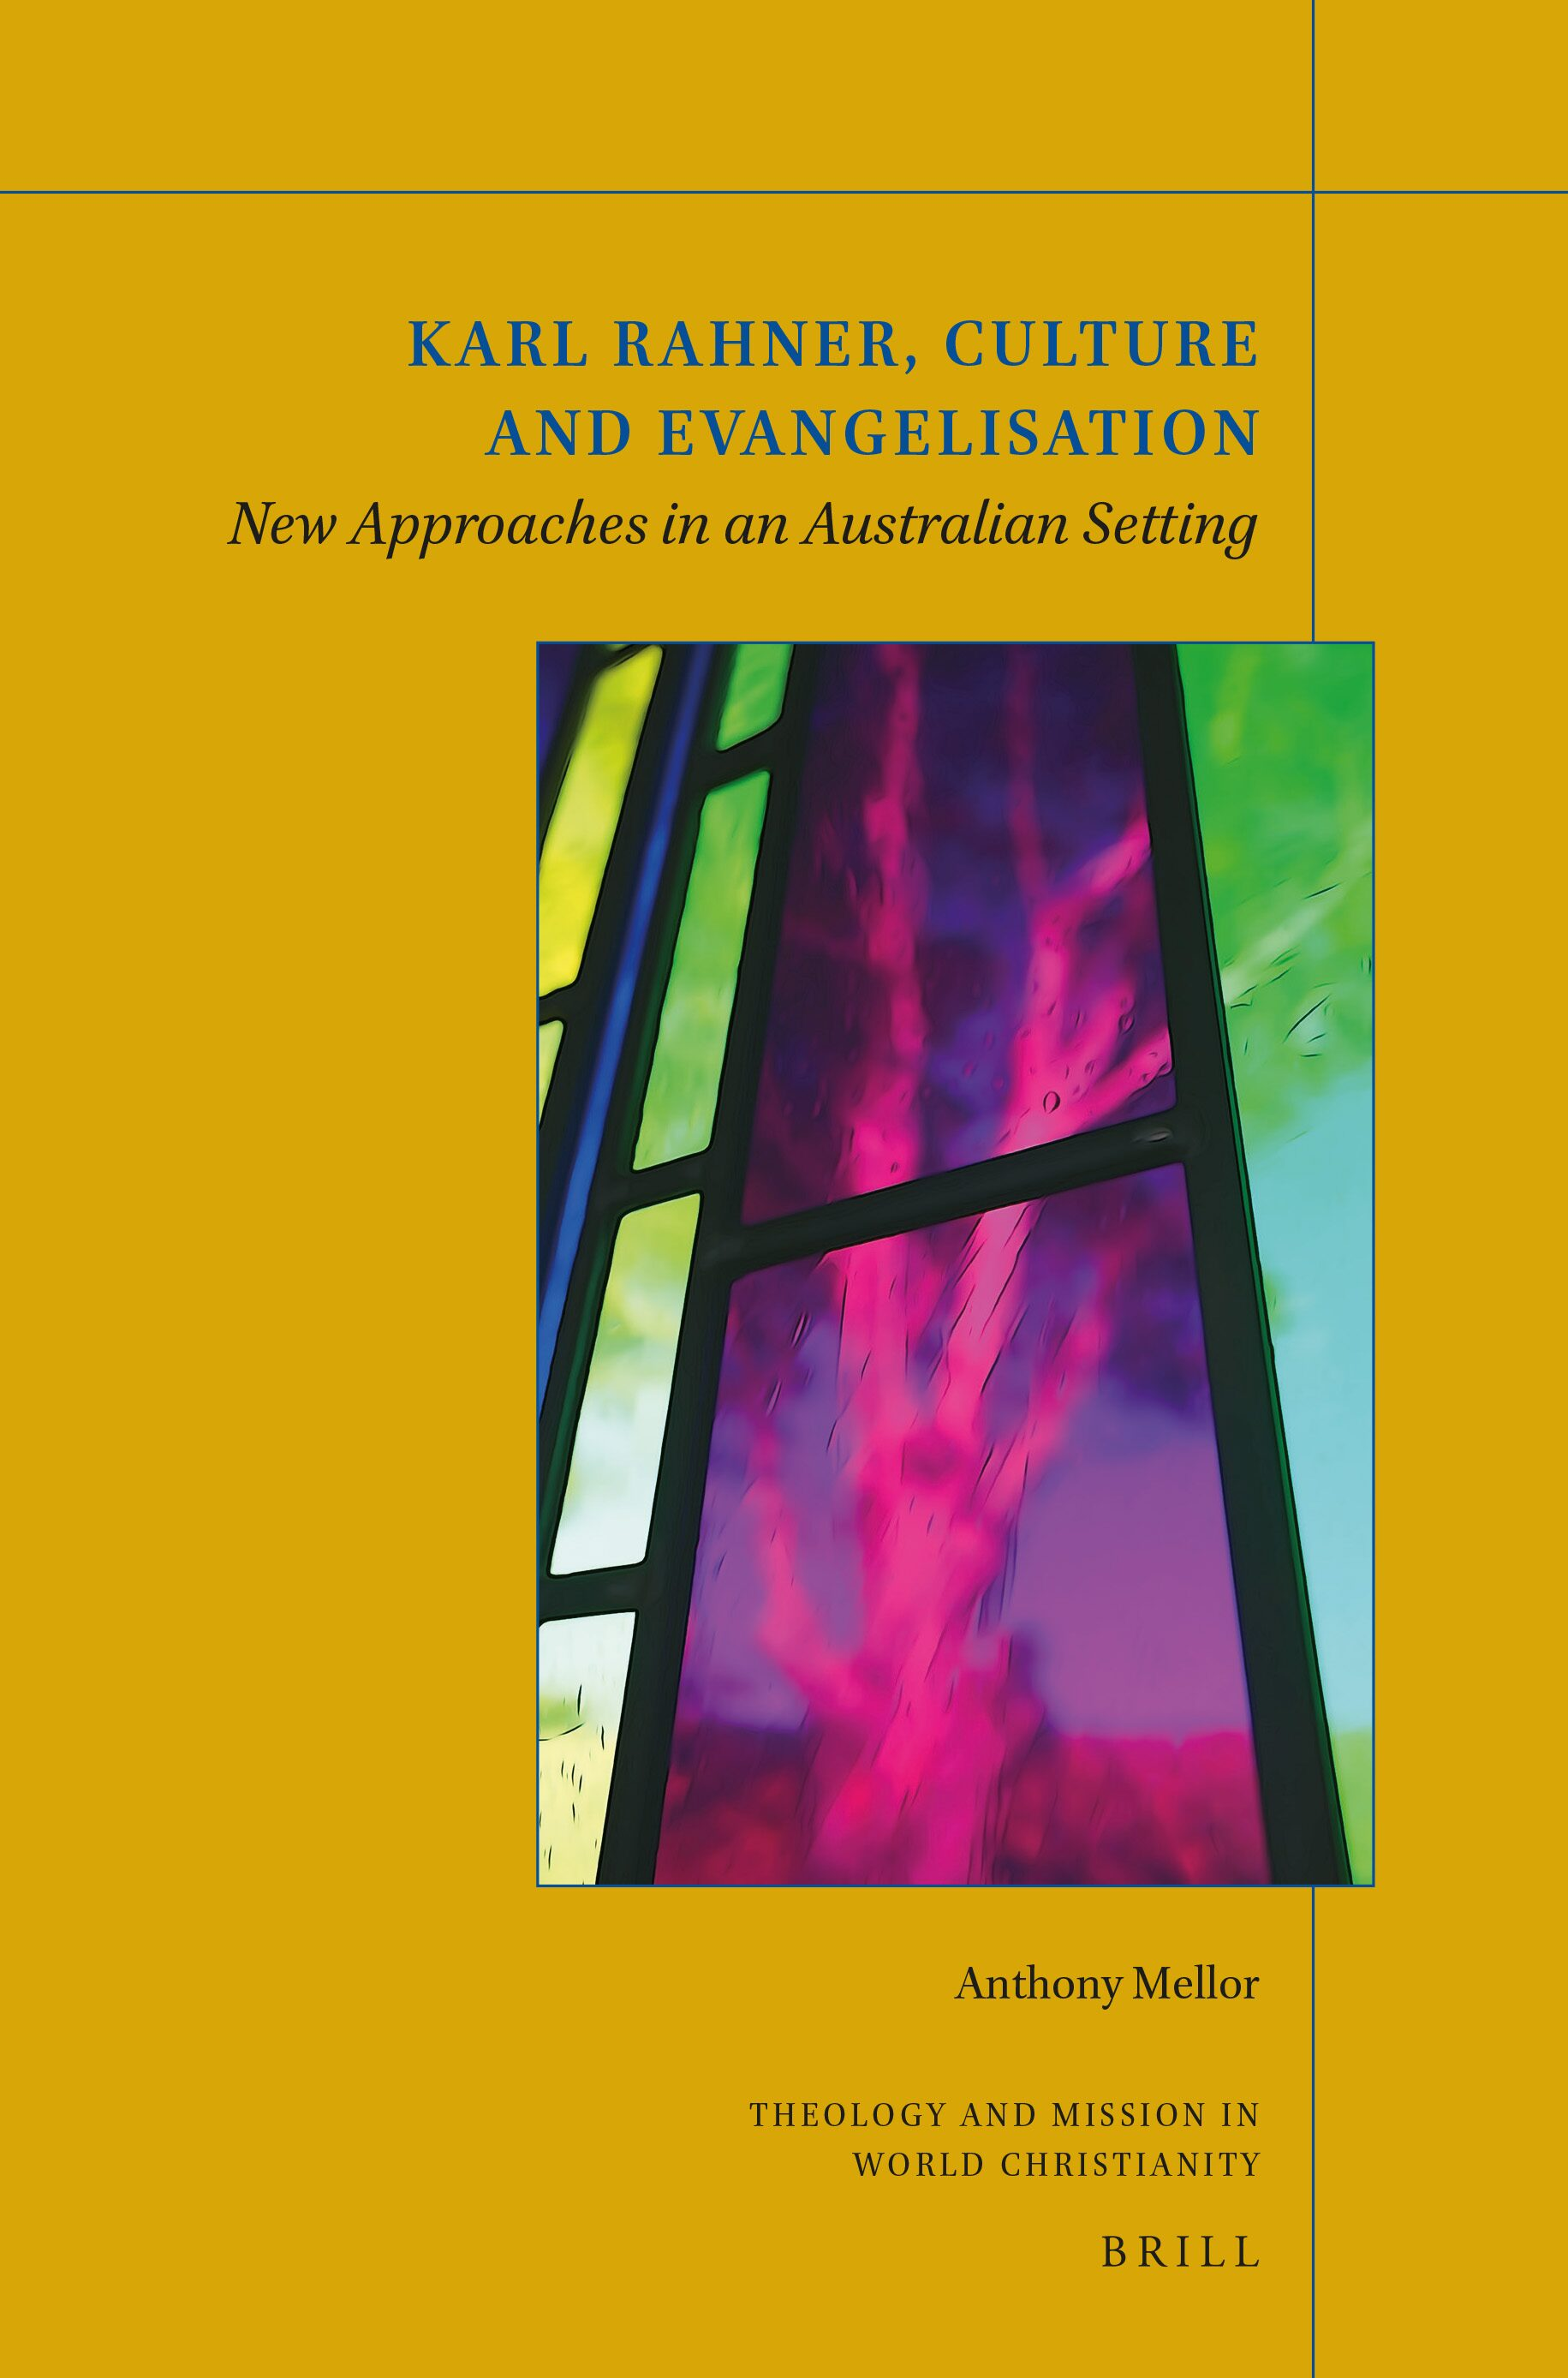 delicate decorative labels.htm readings of the new evangelisation in karl rahner  culture and  readings of the new evangelisation in